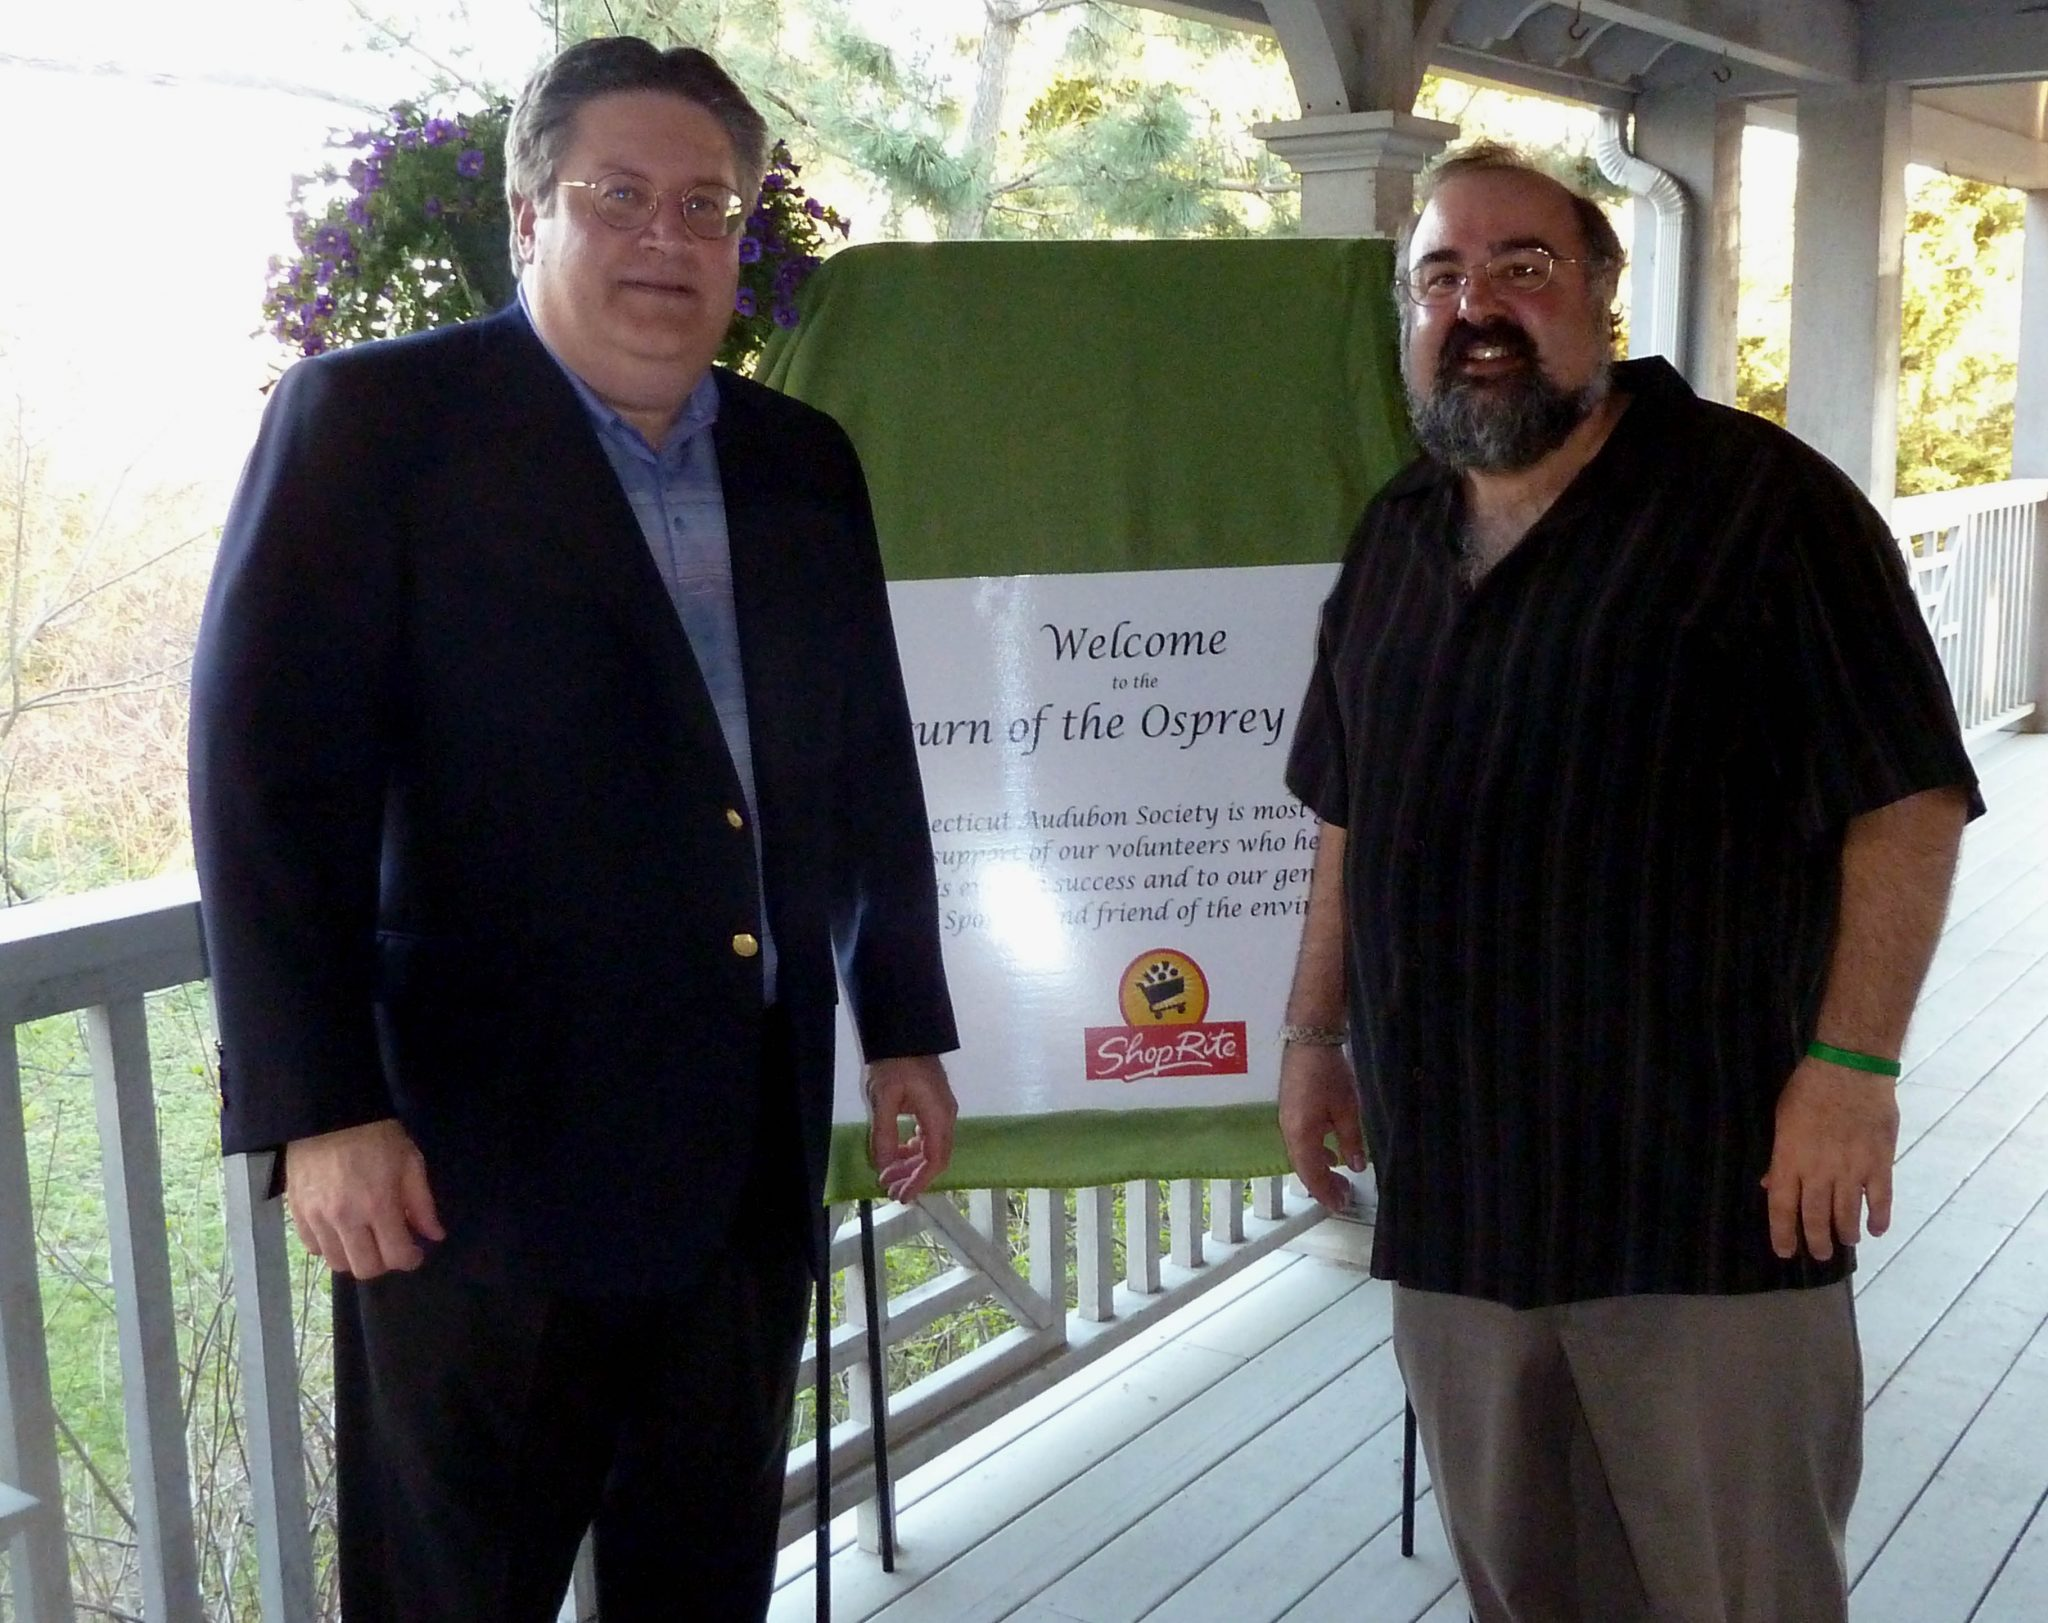 Harry Garafalo from Shoprite with Frank Gallo, Director of the Coastal Center